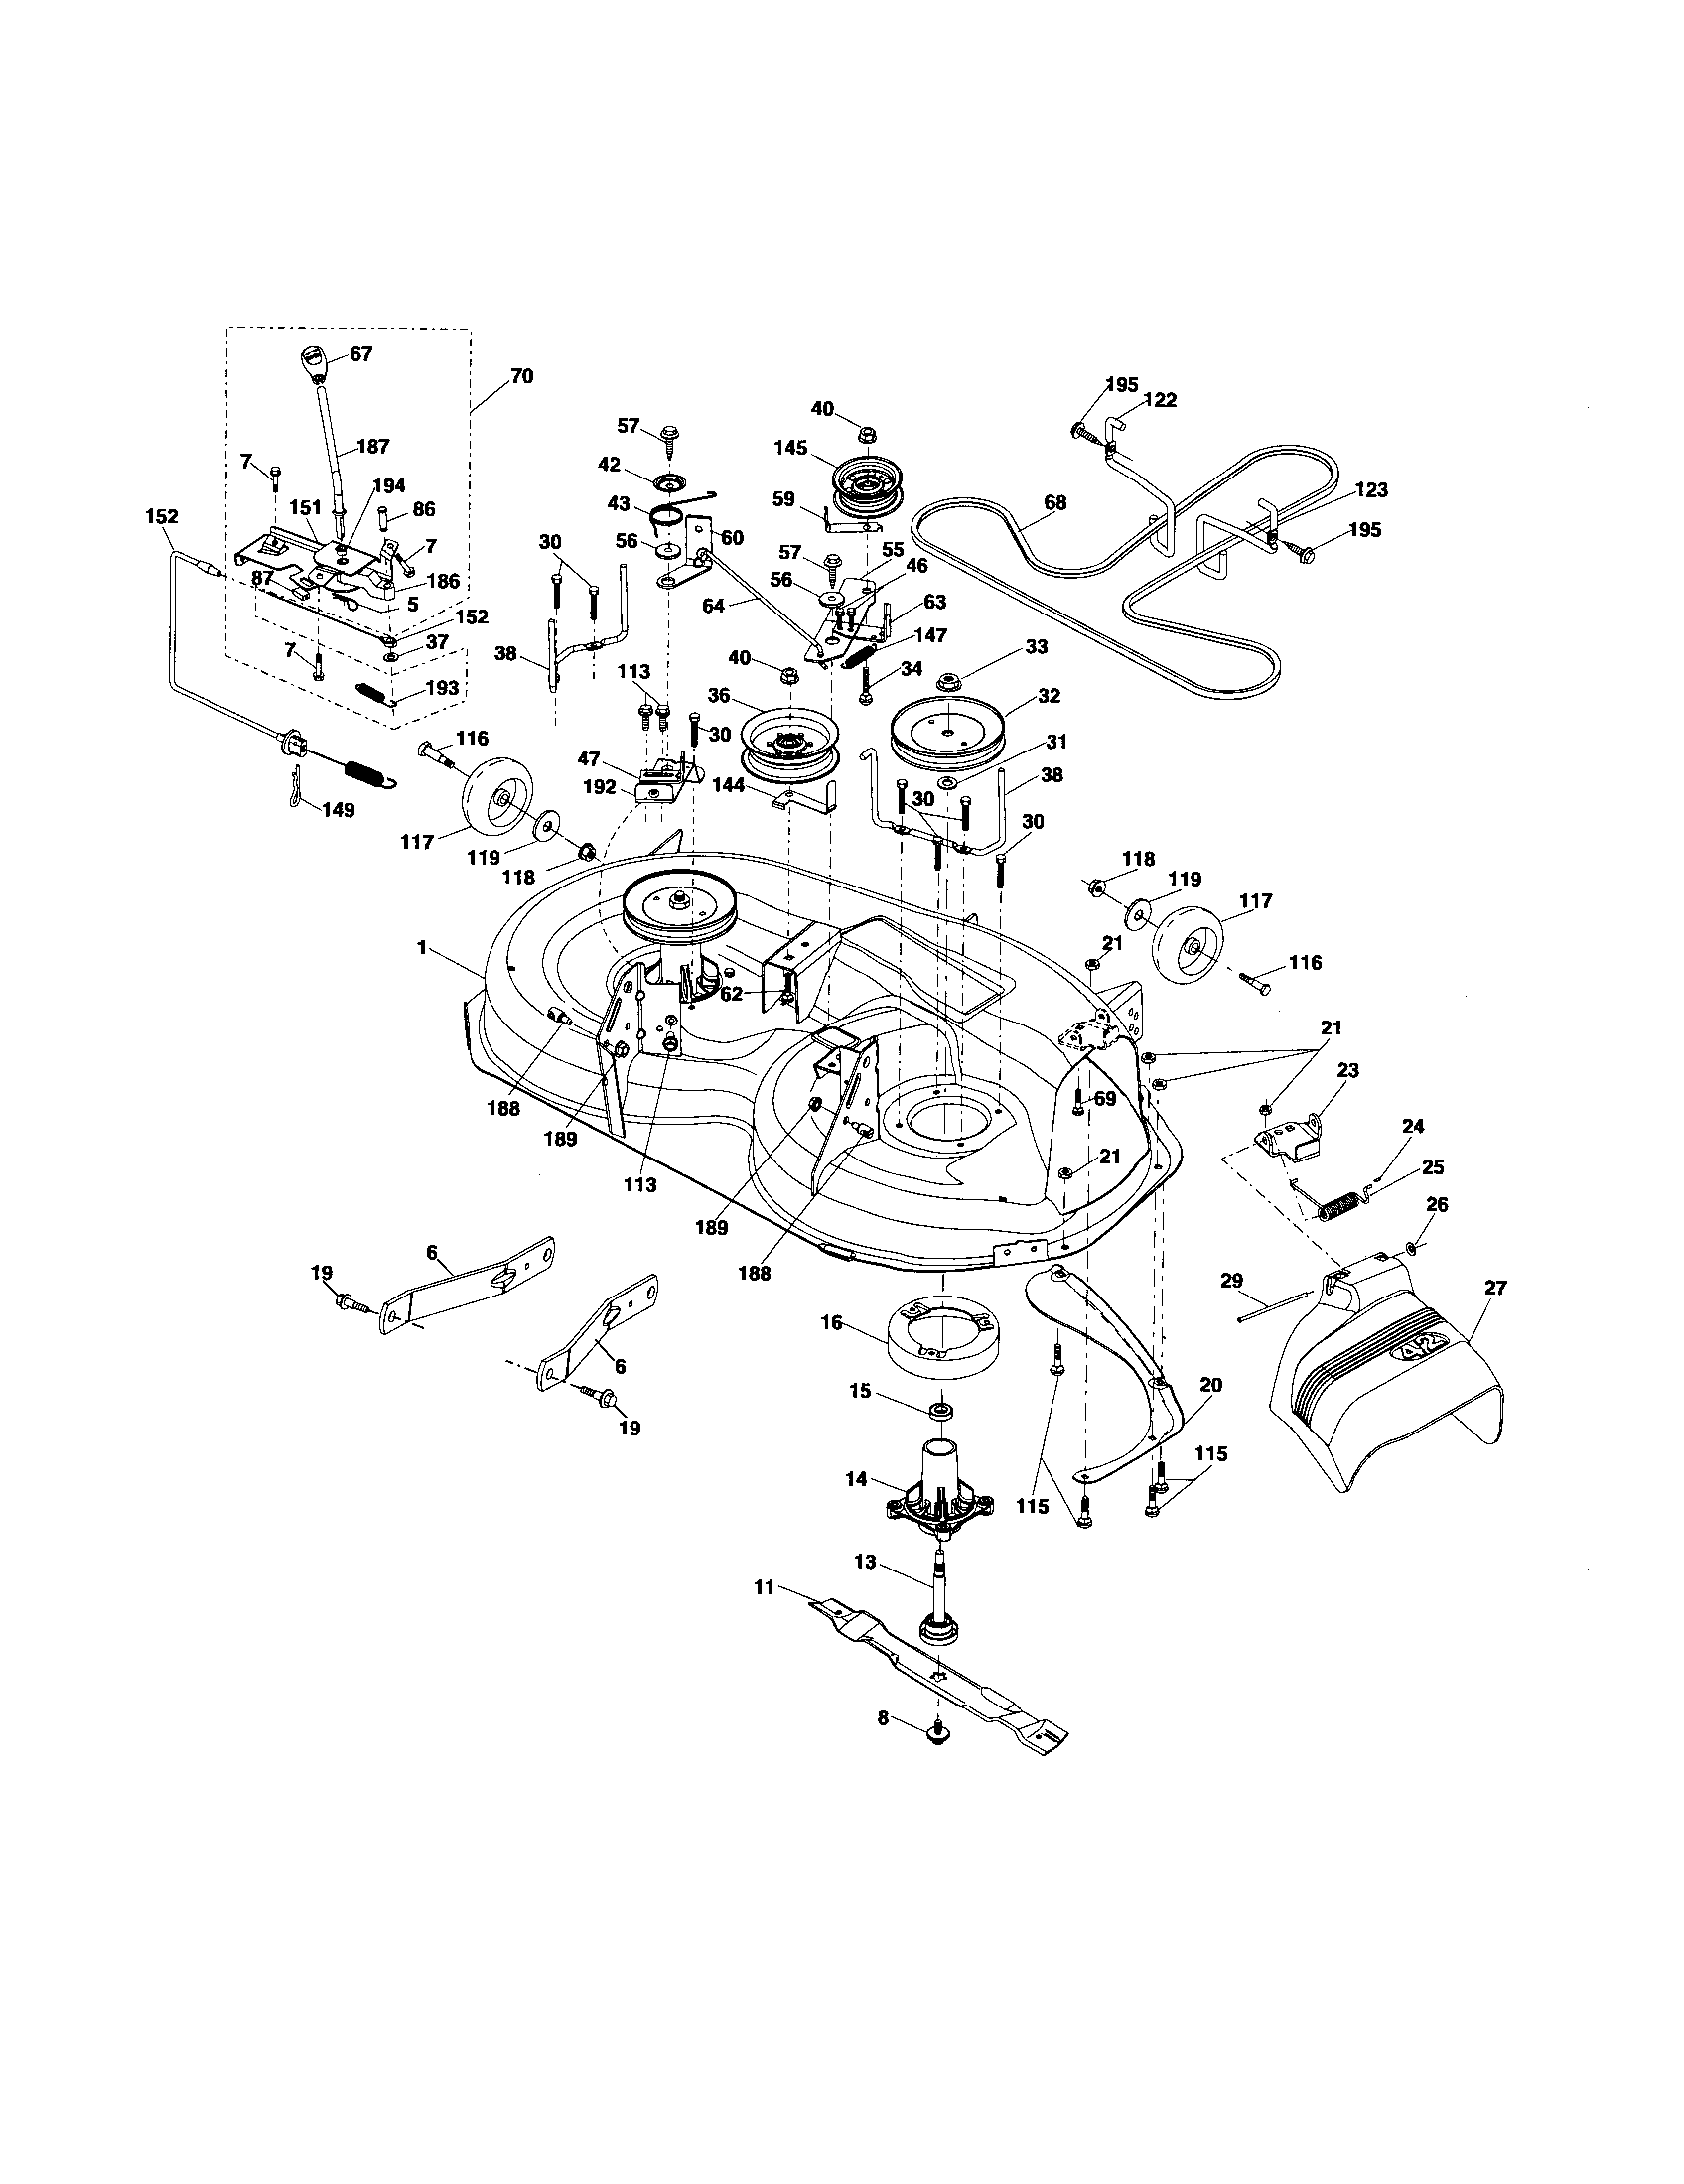 Poulan Pro Riding Mower Carburetor Diagram, Poulan, Free